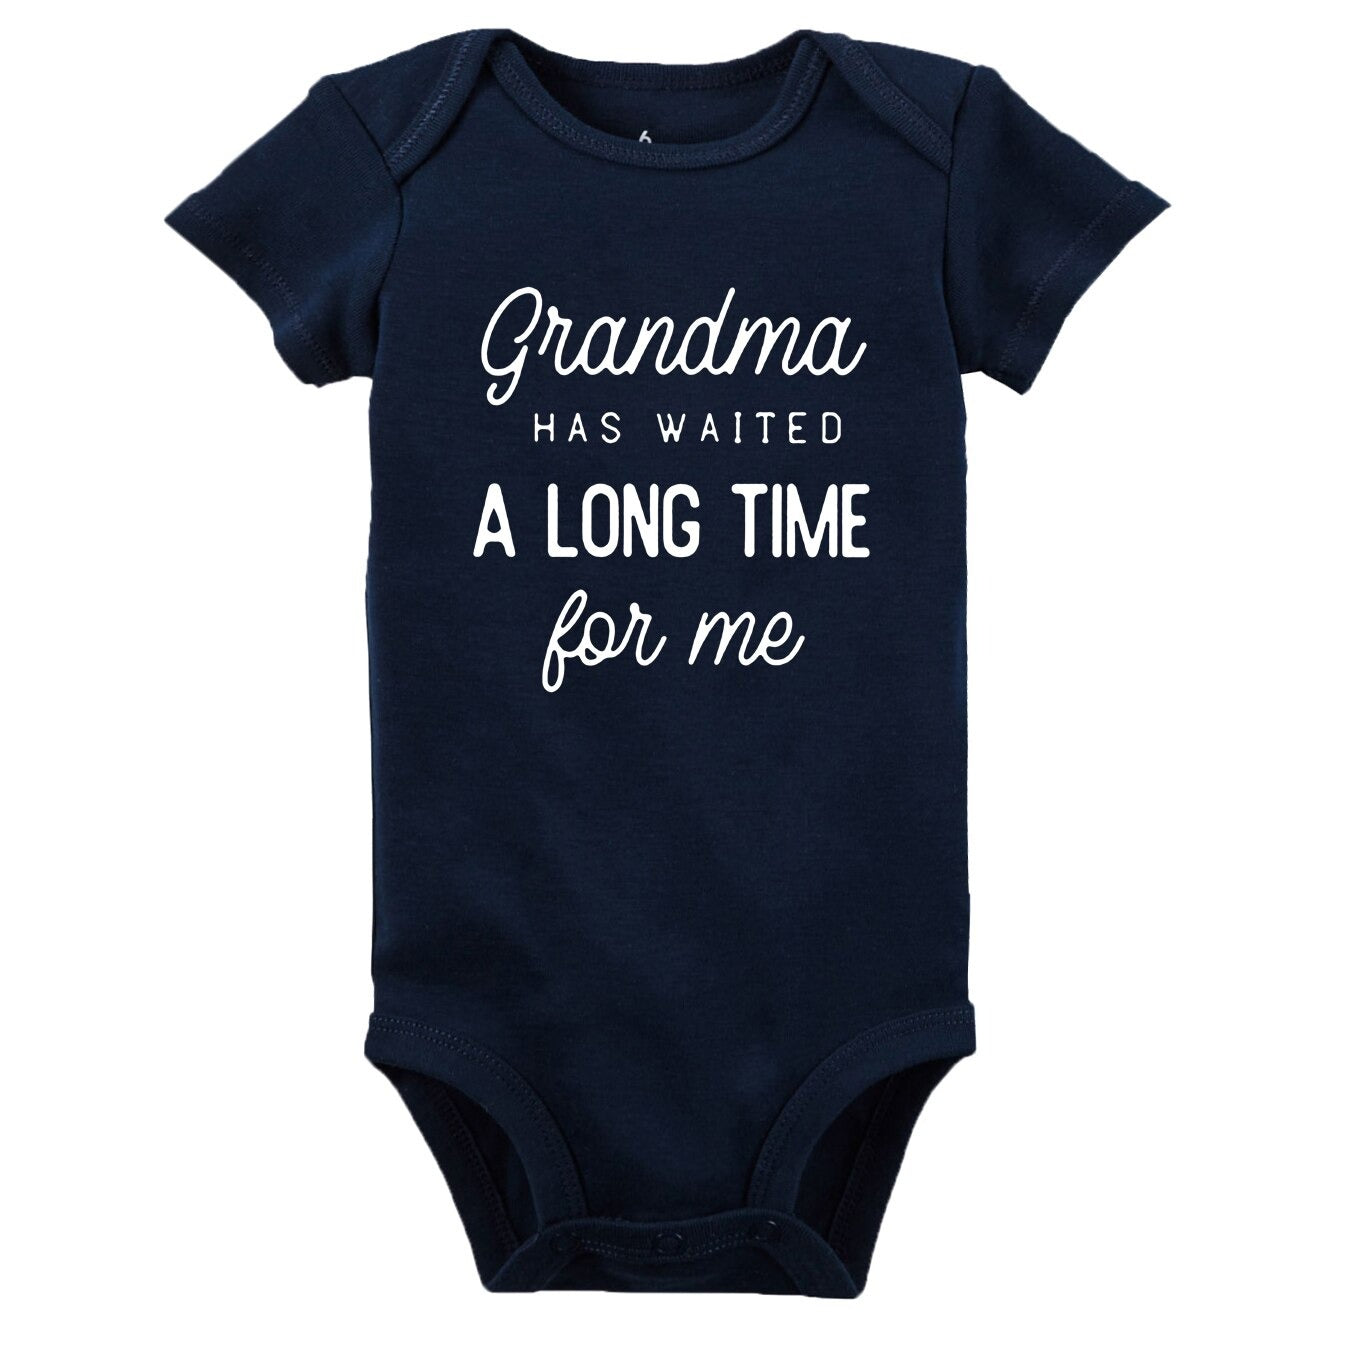 ong-time-letter-printing-new-born-baby-c_description-11